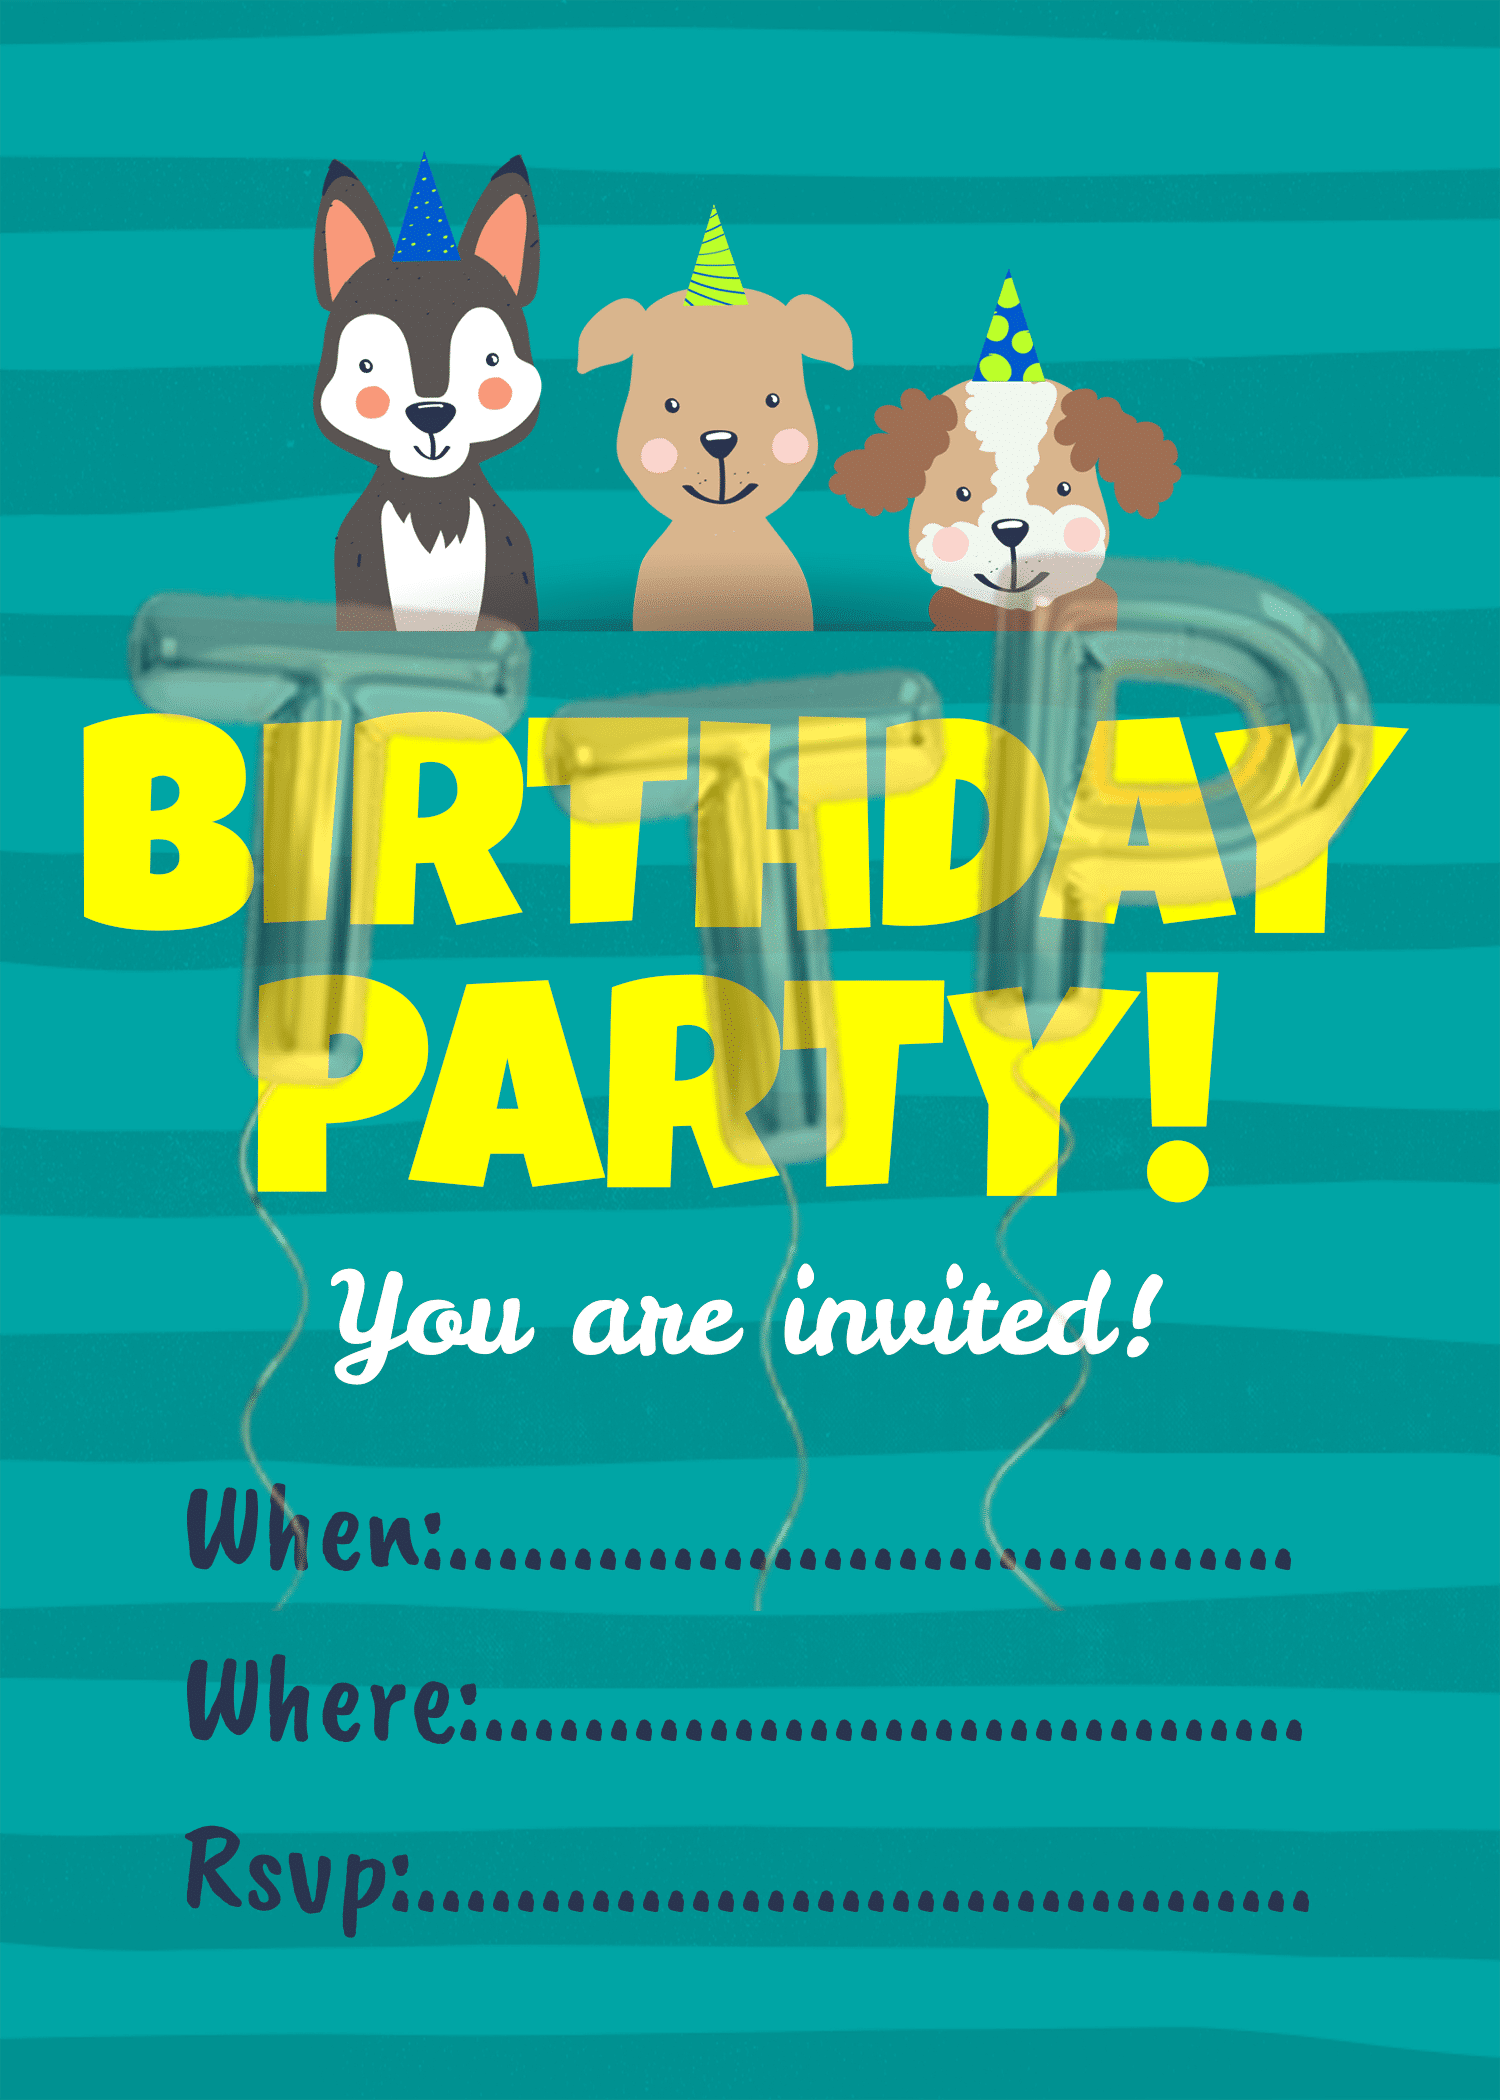 puppies blue BG free download invitation watermark